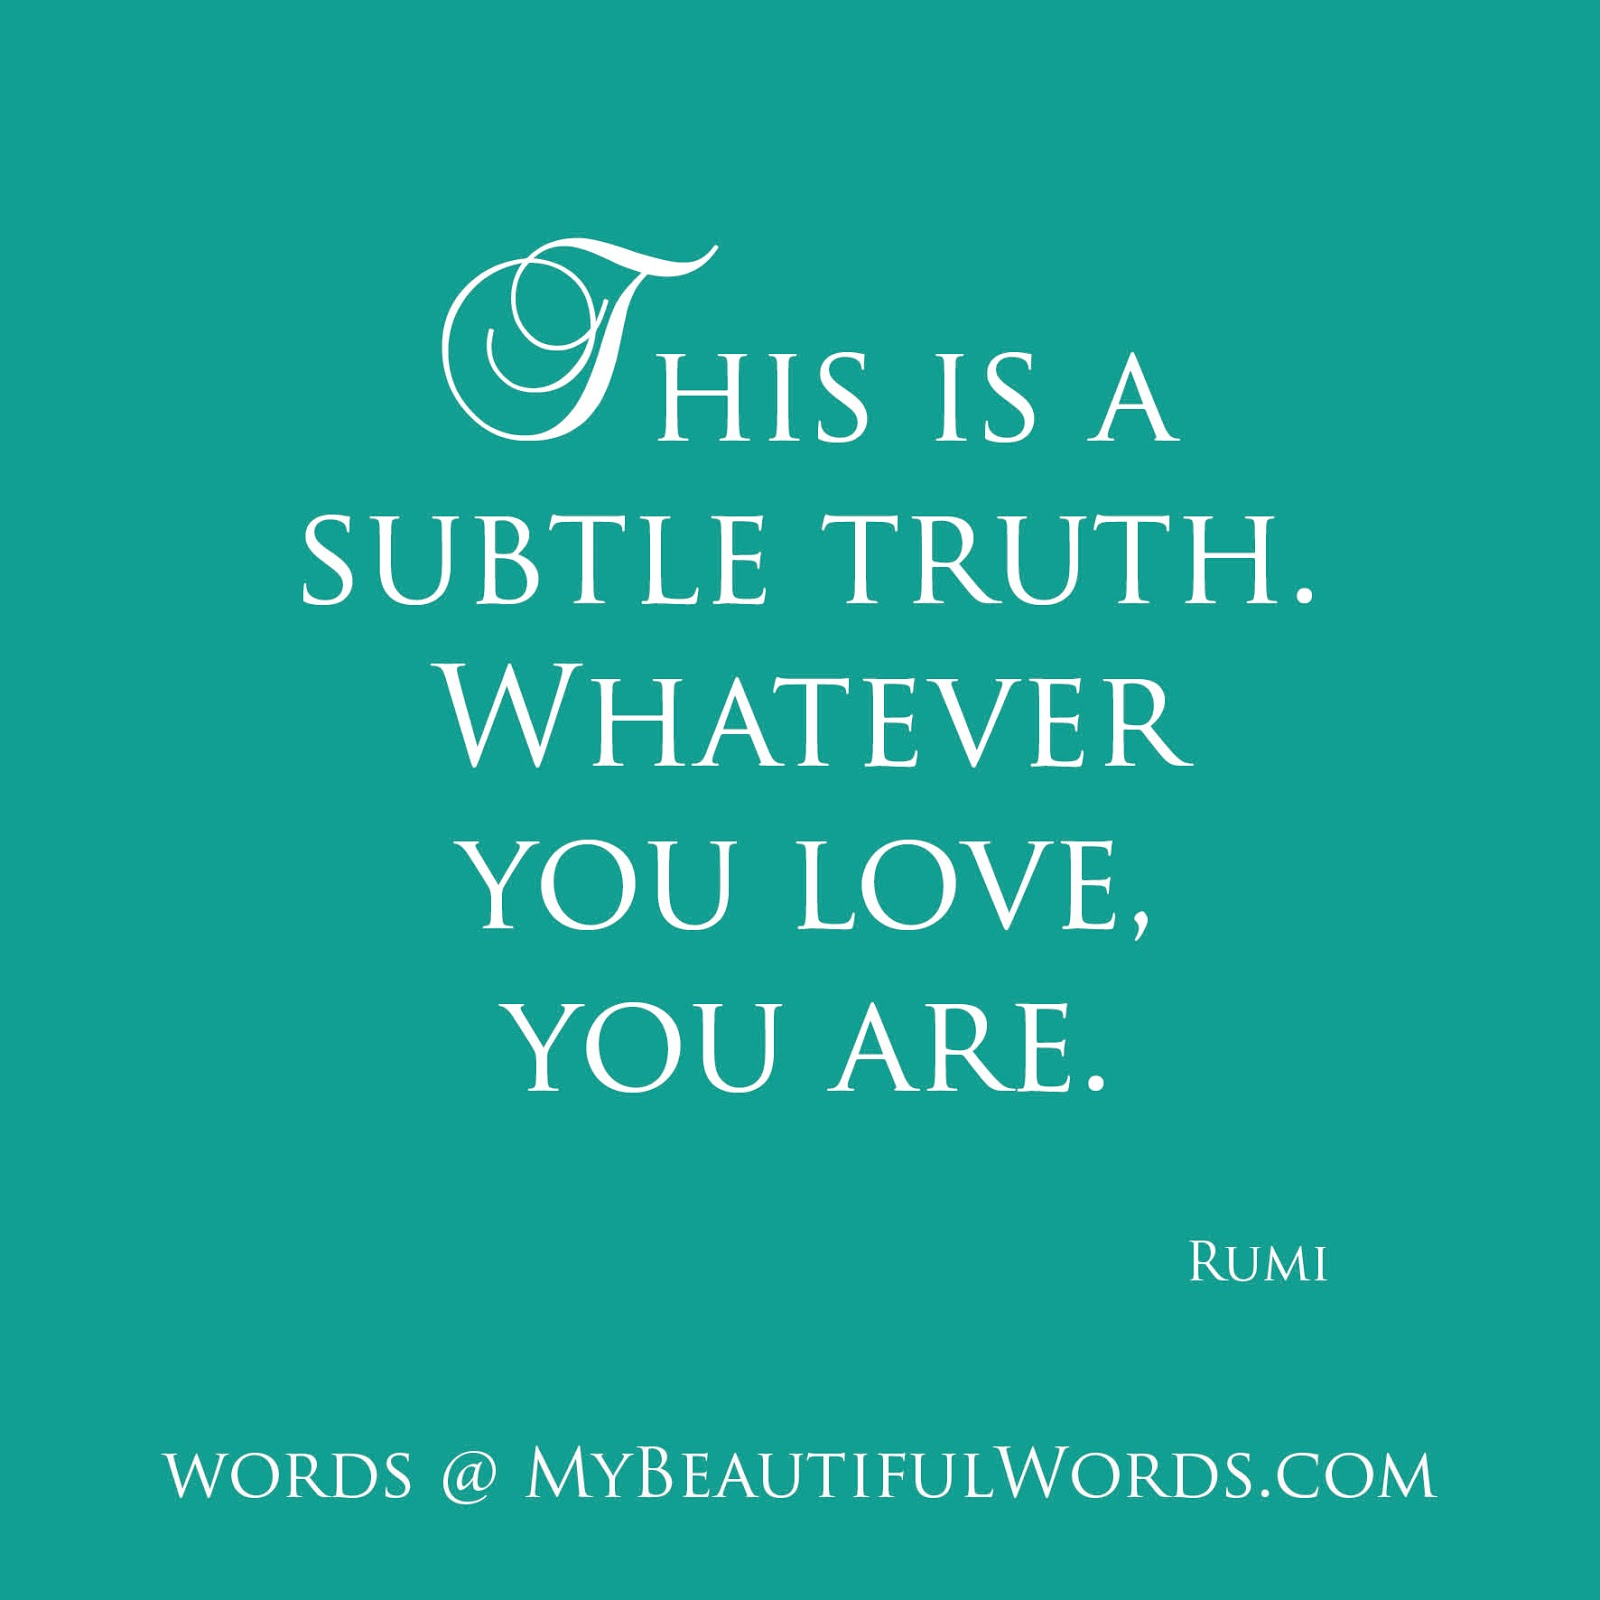 Quotes Anout Love: Rumi Quotes About Love. QuotesGram